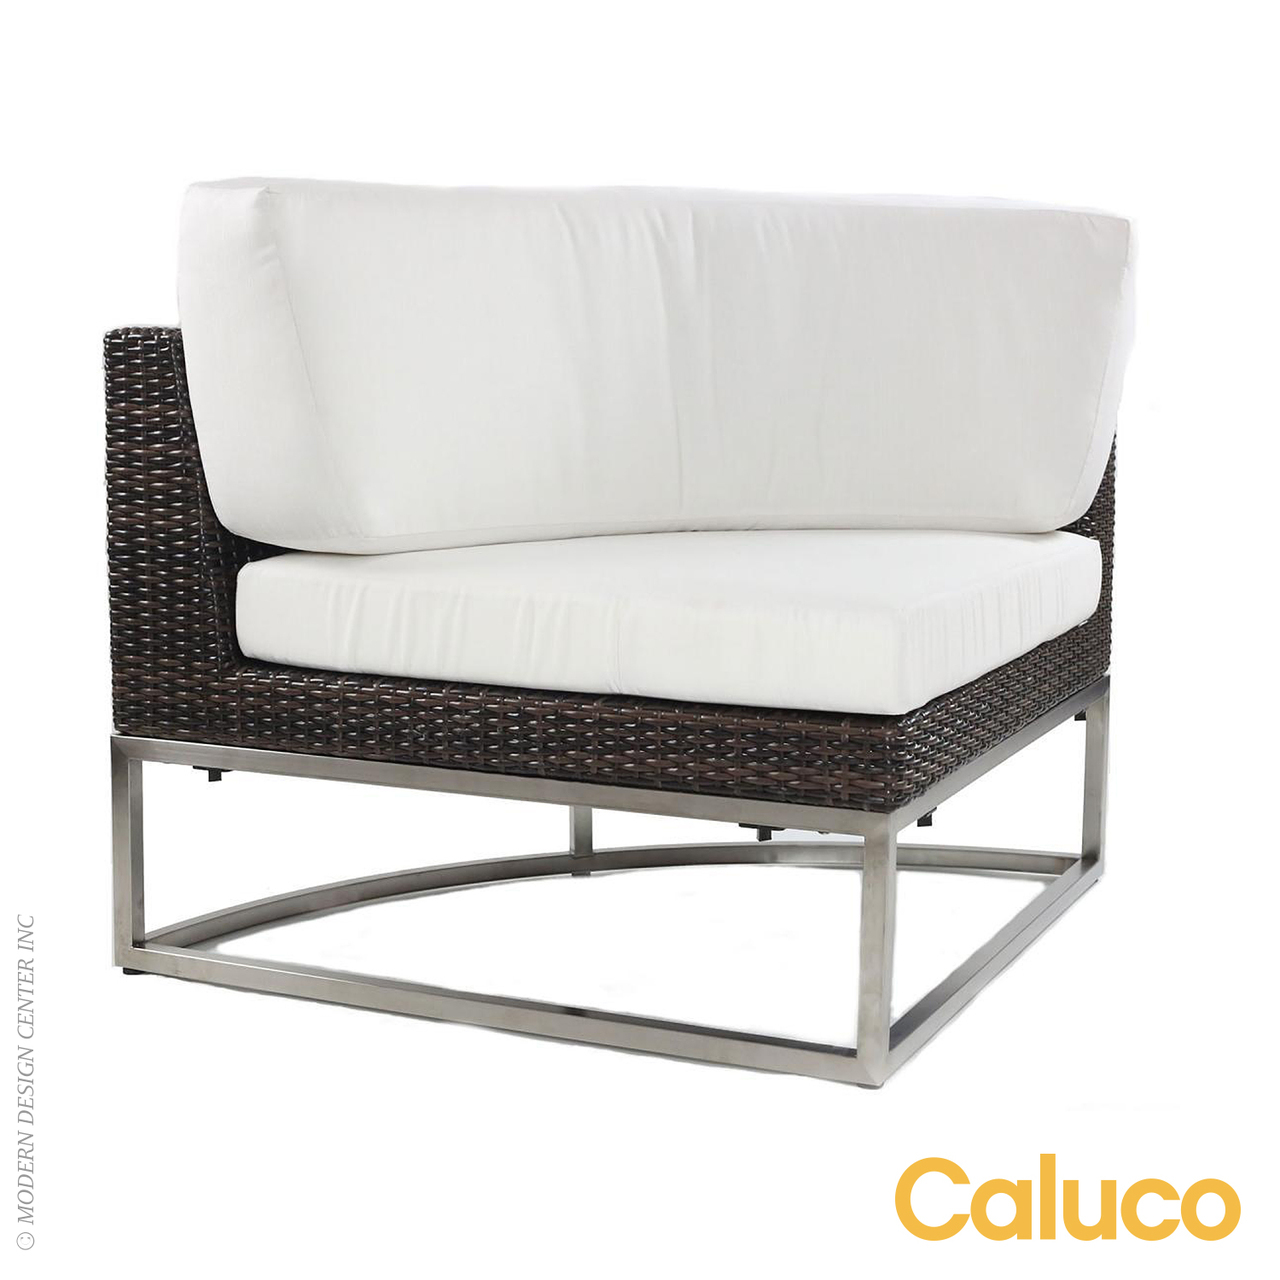 Mirabella Sectional Curved Corner | Caluco Patio Furniture